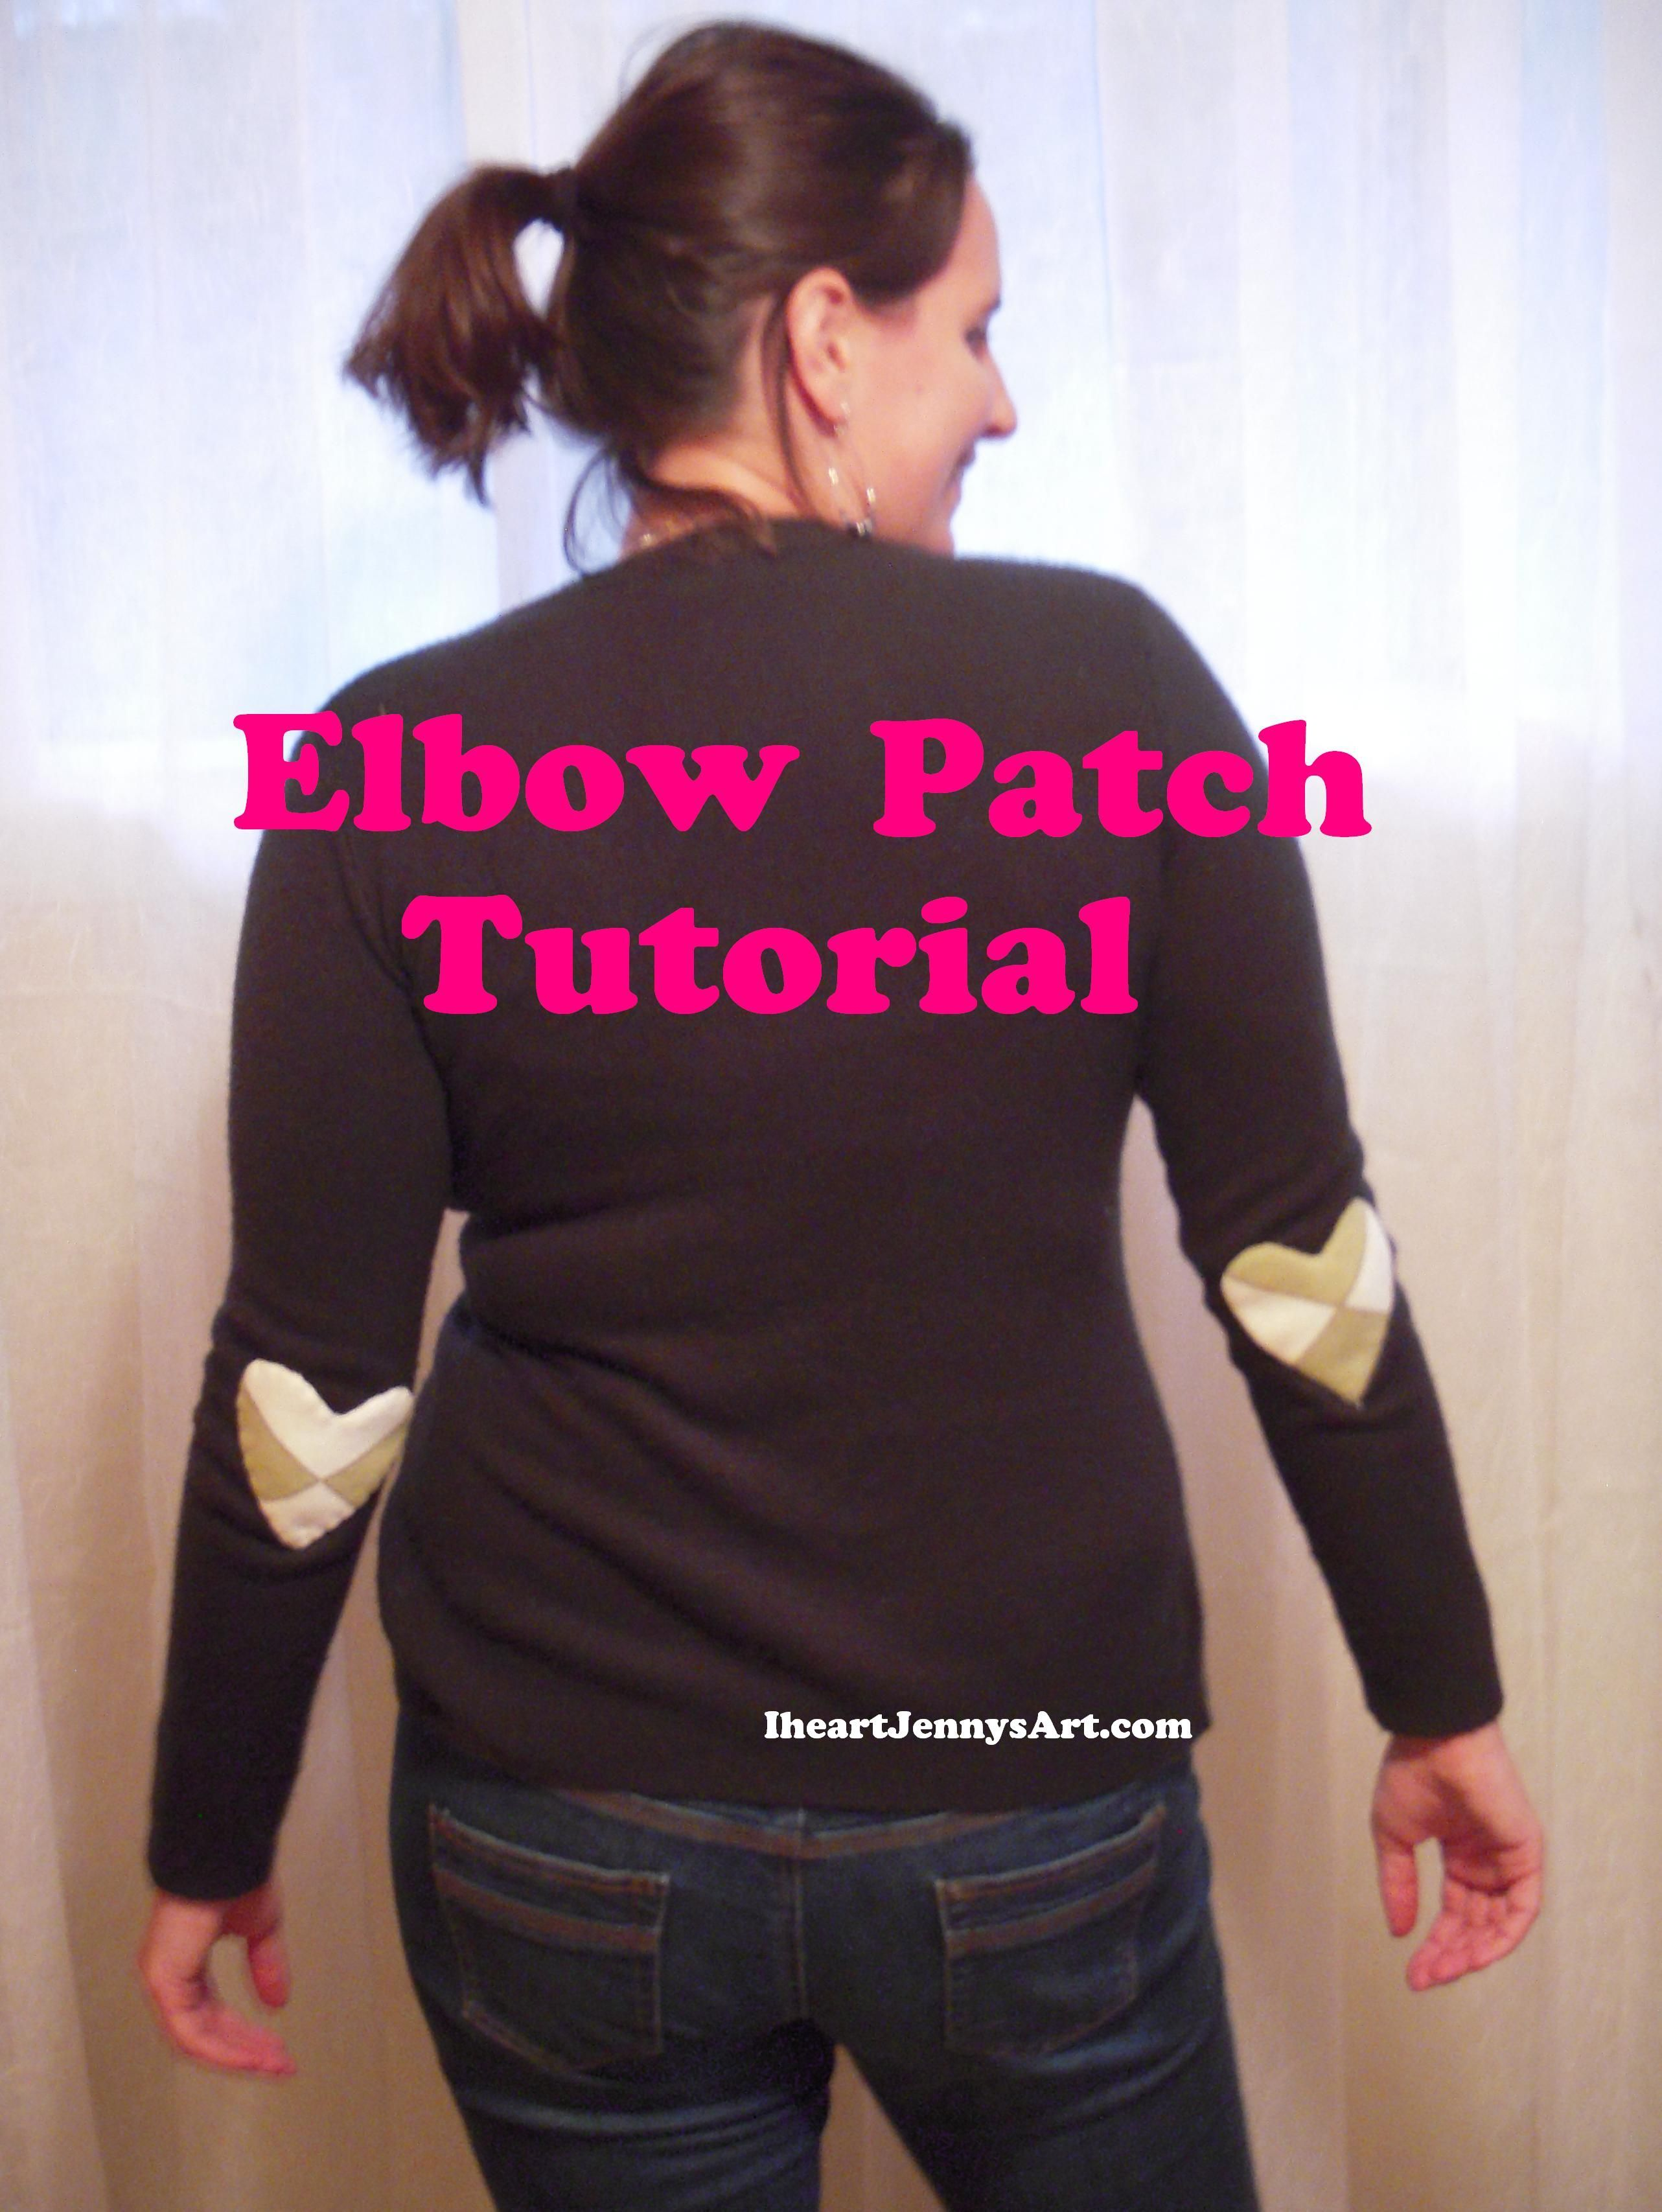 Project 1 of a three part series. How to make elbow patches